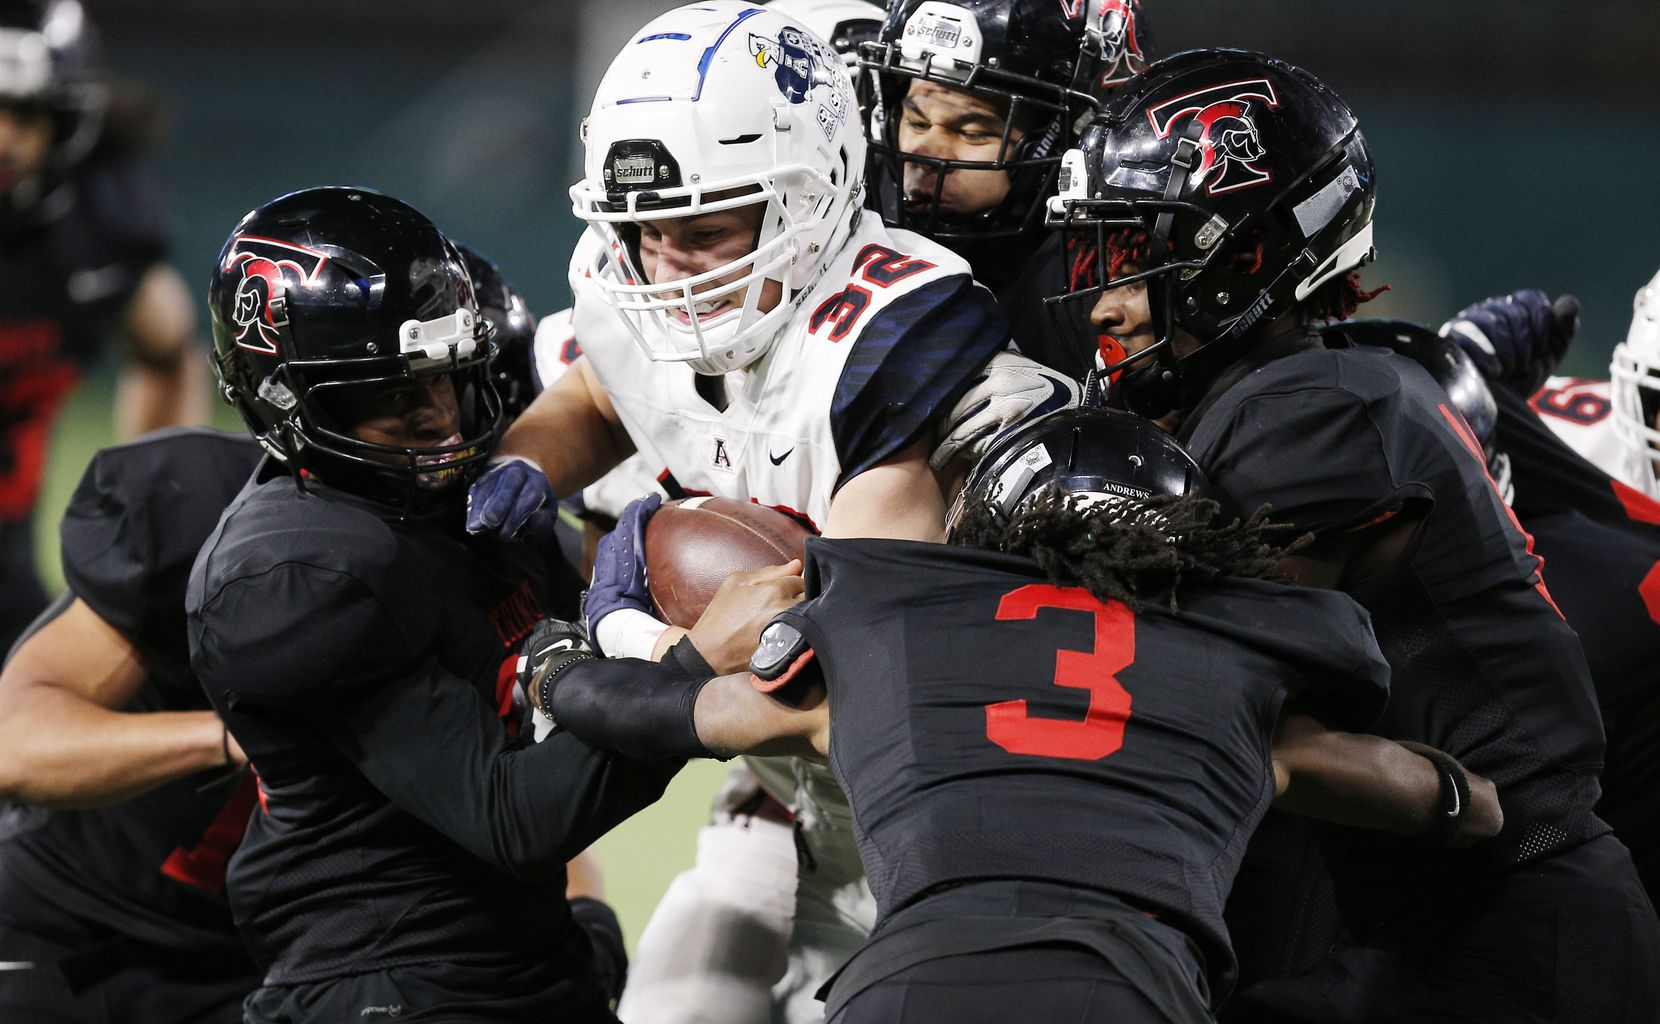 Allen senior wide receiver Carson McKay (32) battles for yardage against Euless Trinity defenders during the first half of a high school Class 6A Division I Region I semifinal football game at Globe Life Park in Arlington, Saturday, December 26, 2020. (Brandon Wade/Special Contributor)